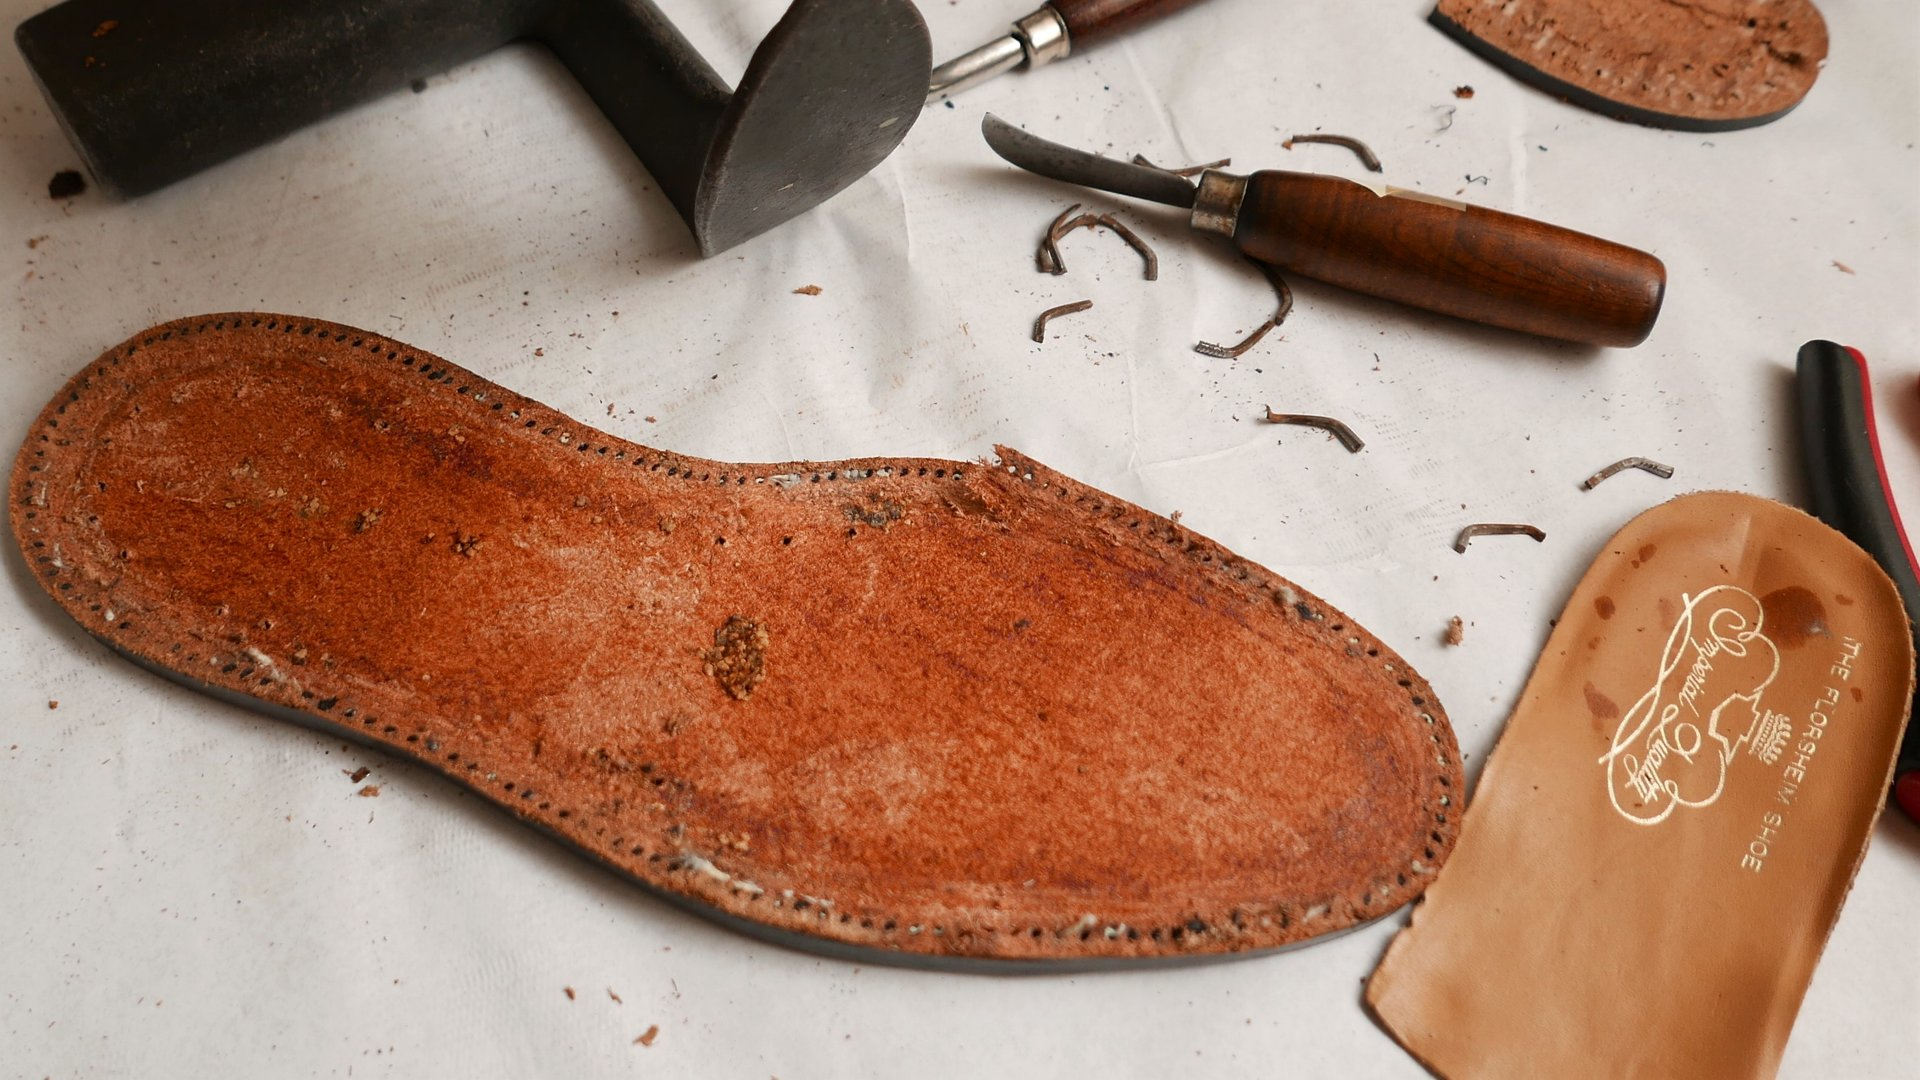 Florsheim Shoe Construction